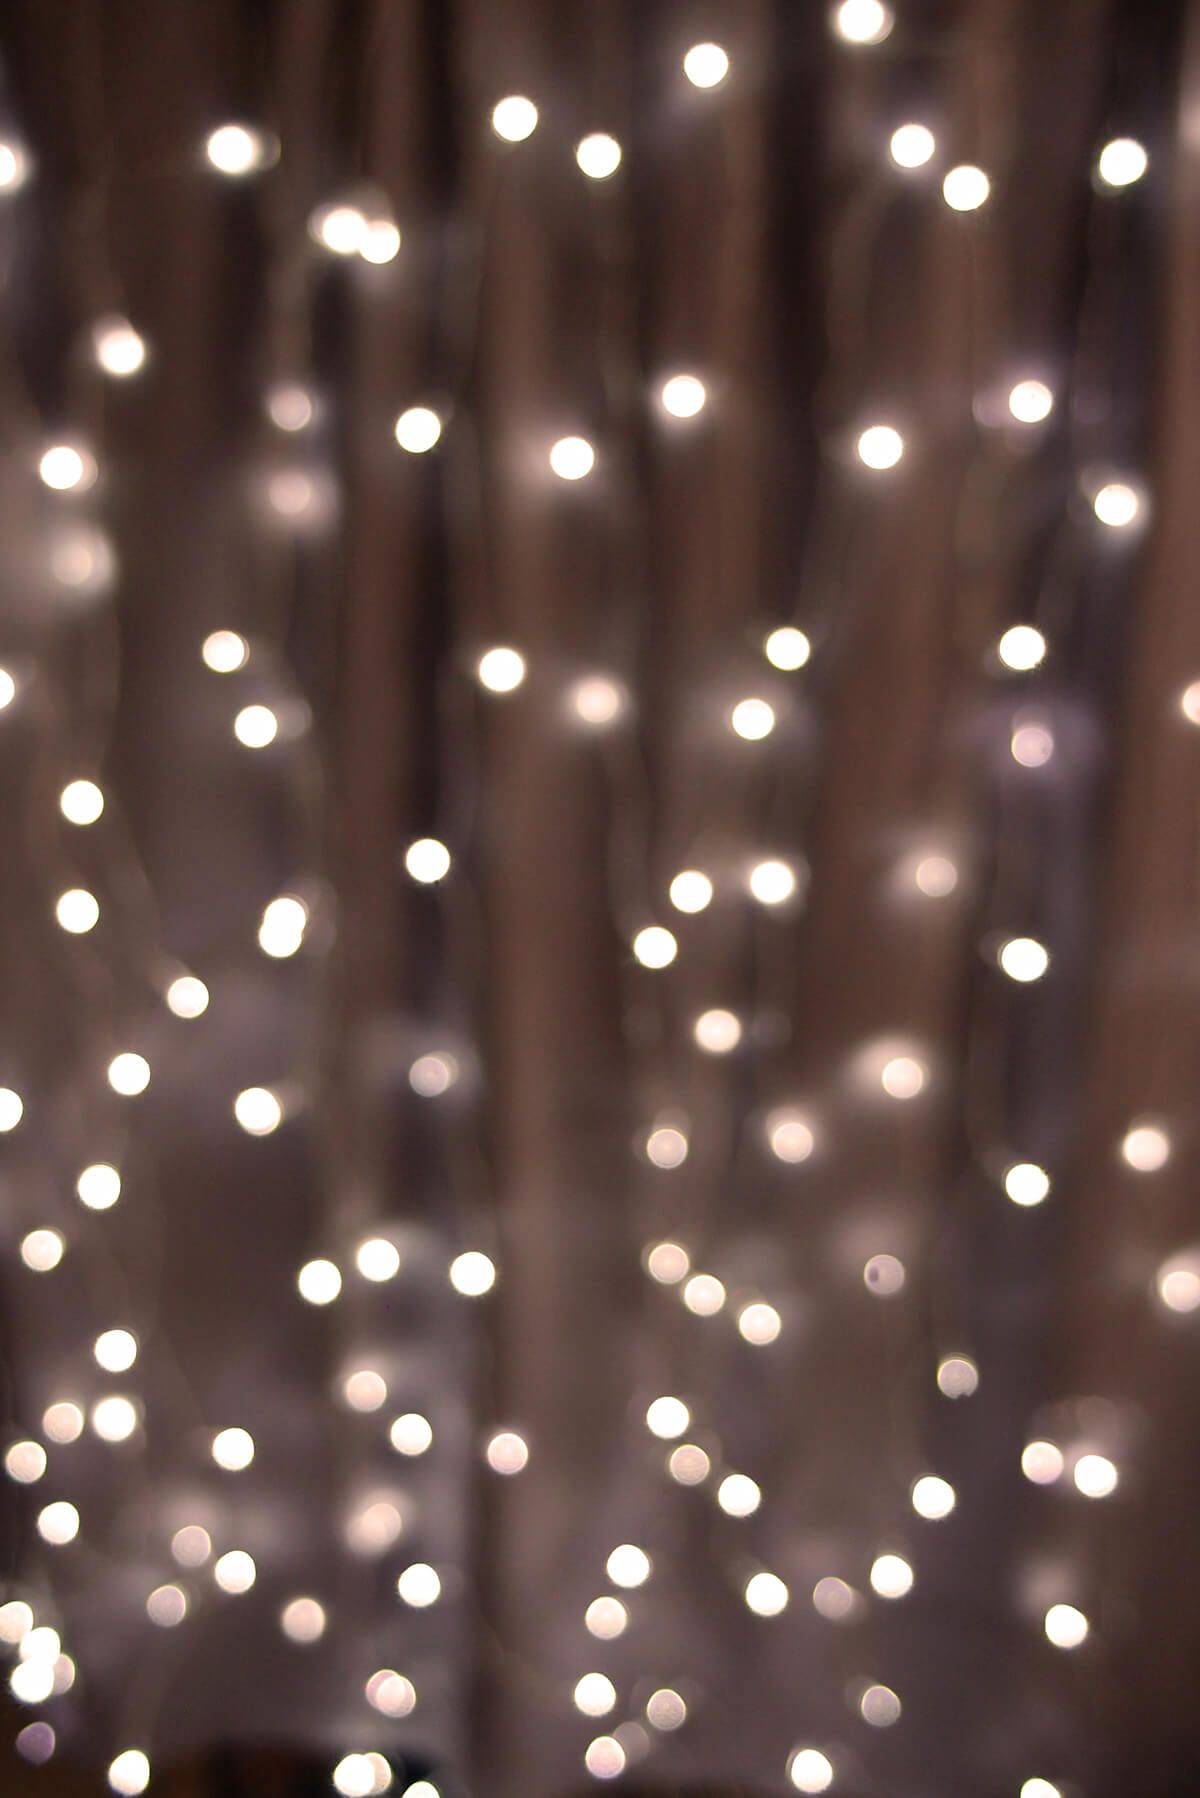 Light Curtain Led 3 X 6ft Warm White Christmas Lights Wallpaper Iphone Wallpaper Lights Christmas Phone Wallpaper